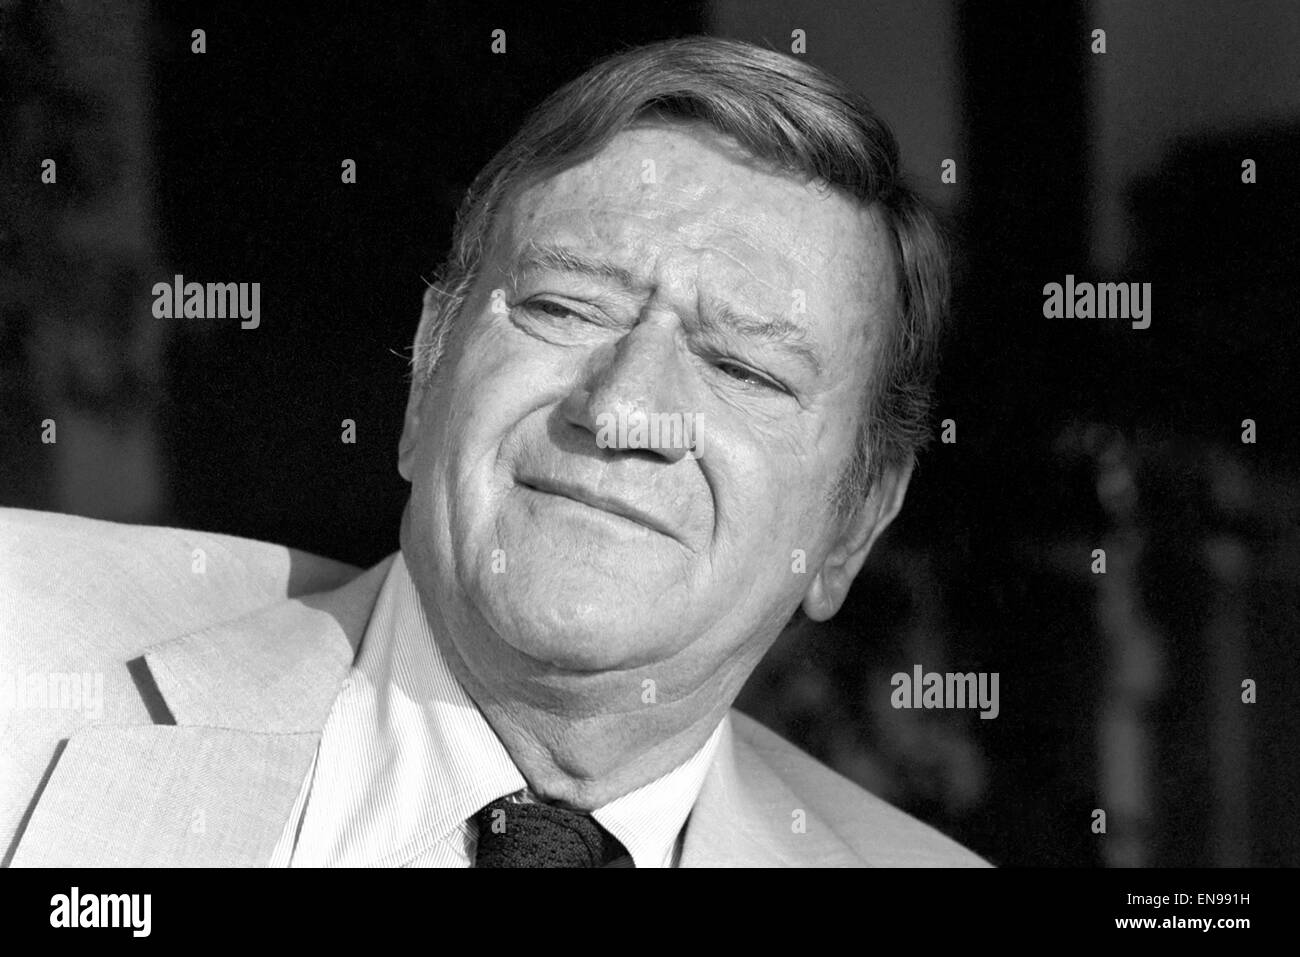 John Wayne who stars in 'Brannigan' seen here at home in Texas. 8th June 1975 - Stock Image